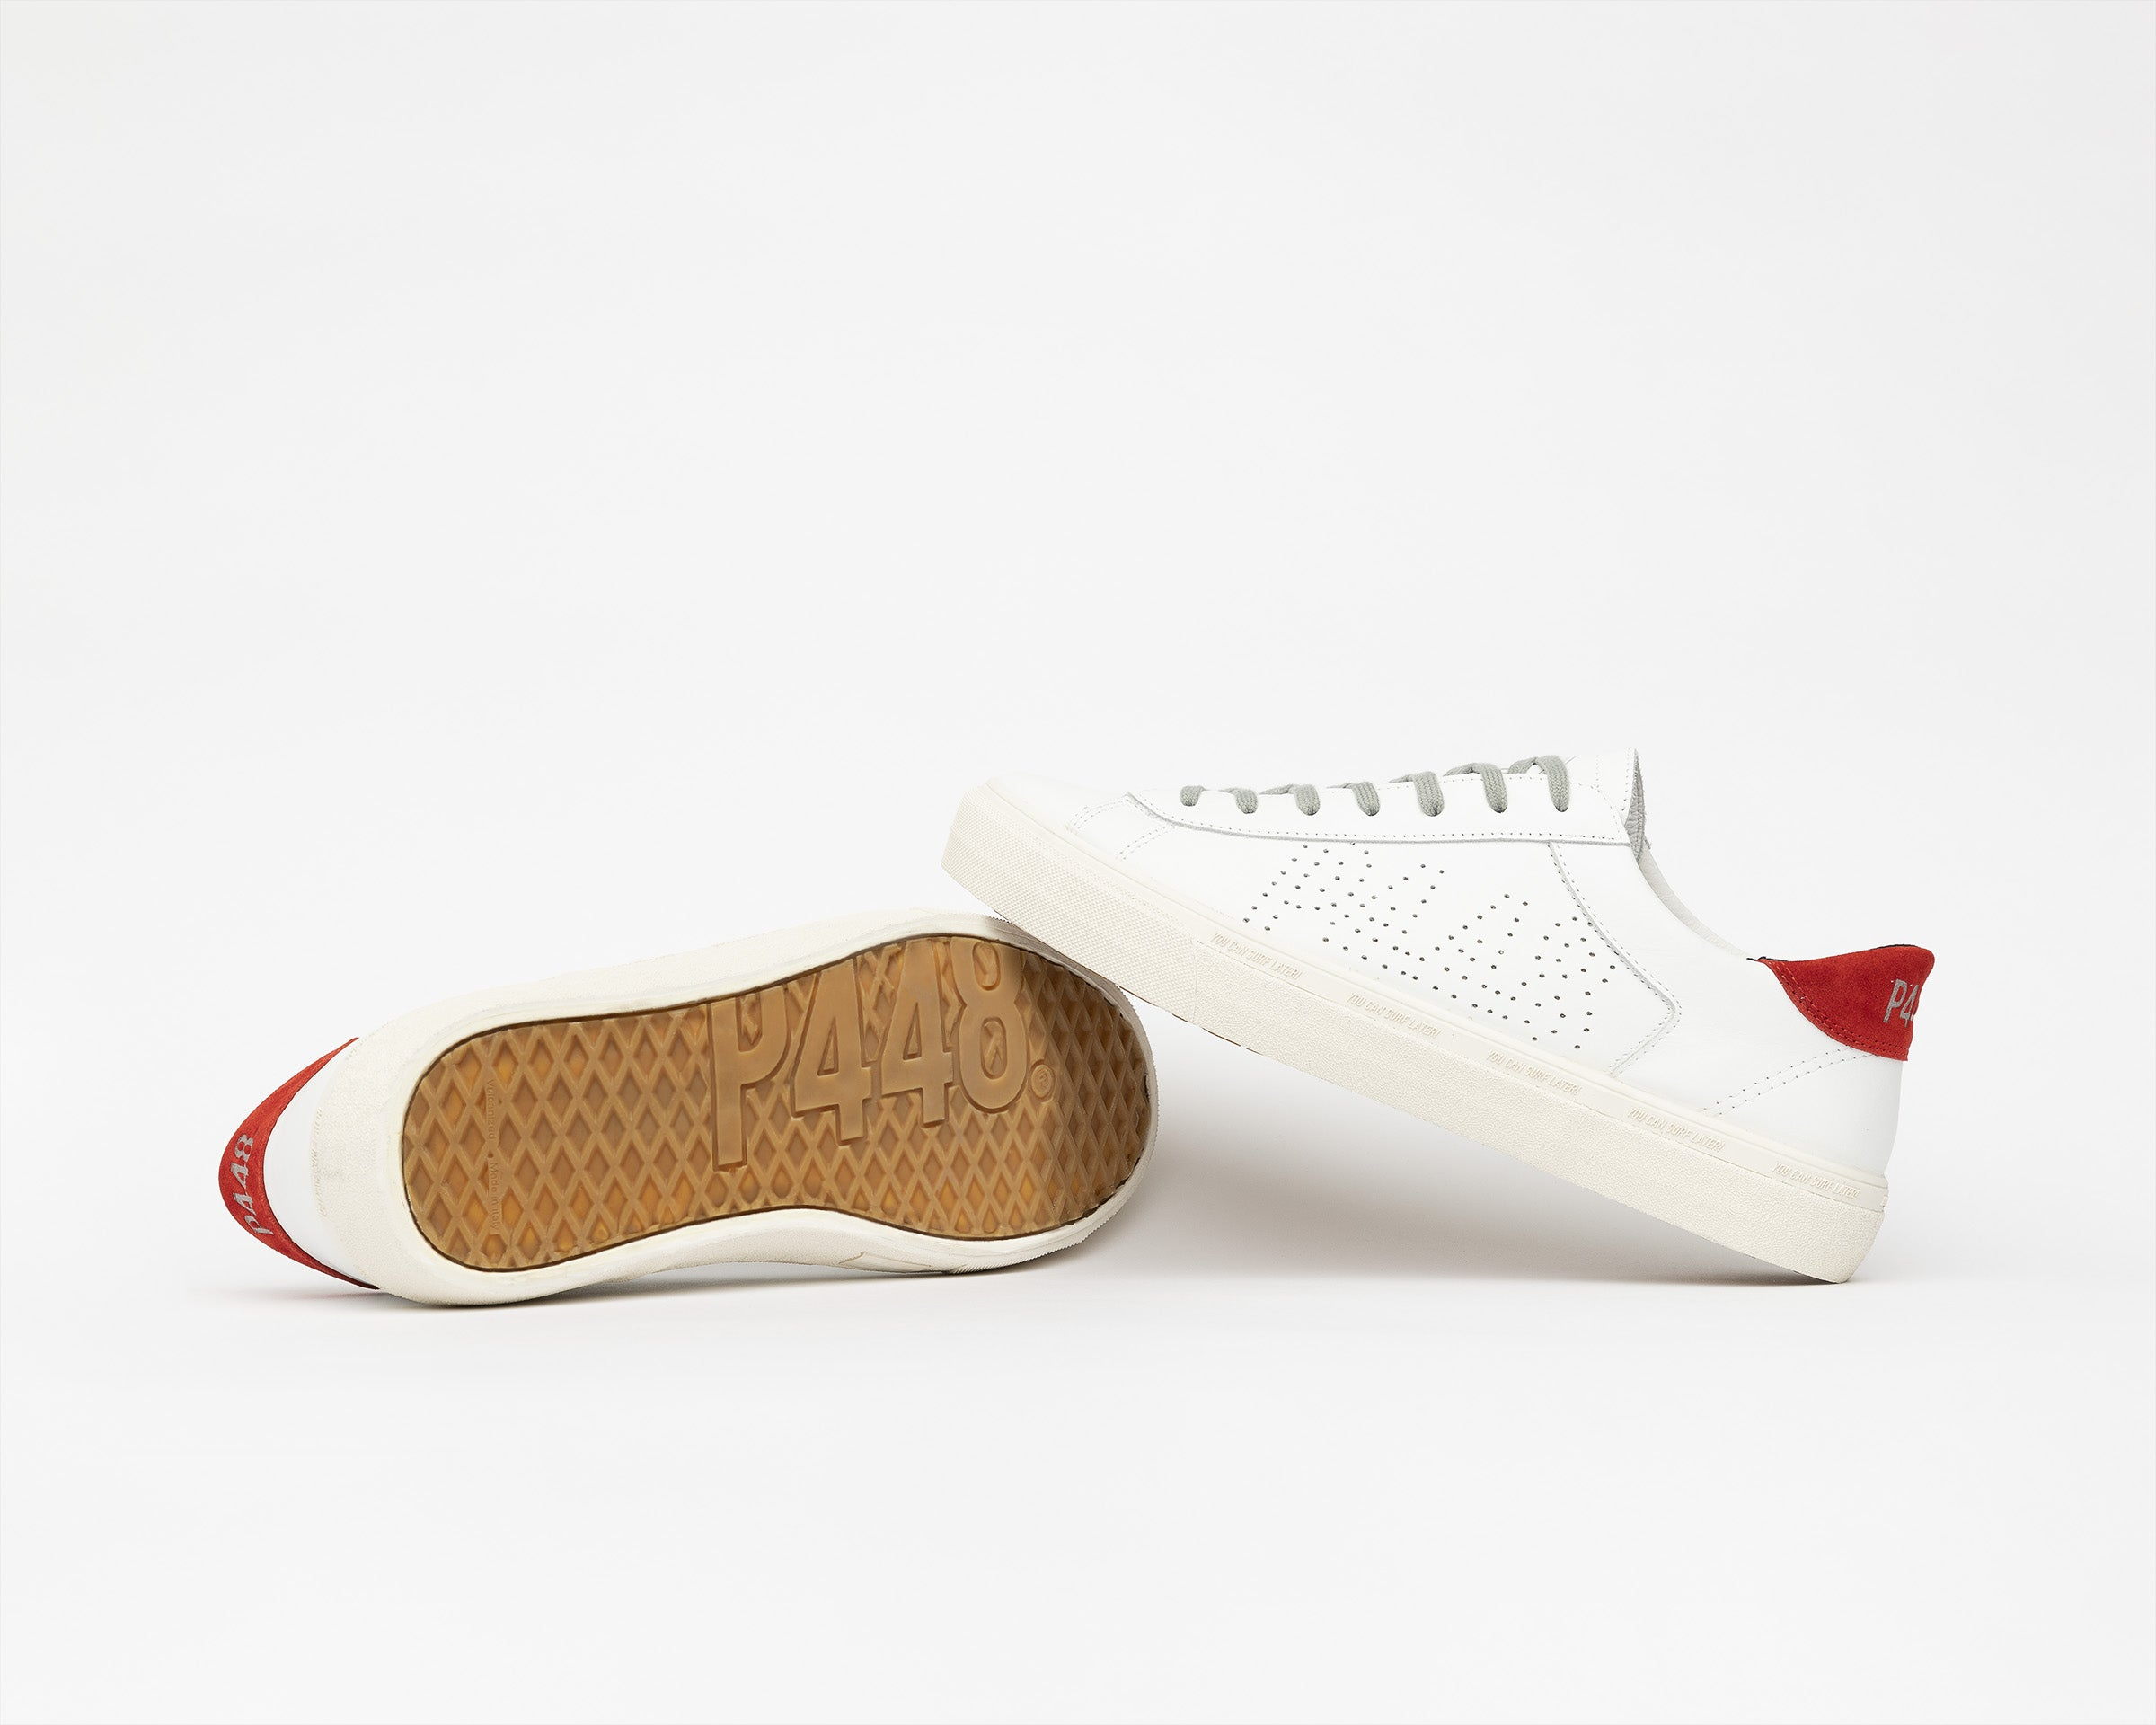 Y.C.S.L. Low-Top Volcanized Sneaker in White/Red - Detail 1